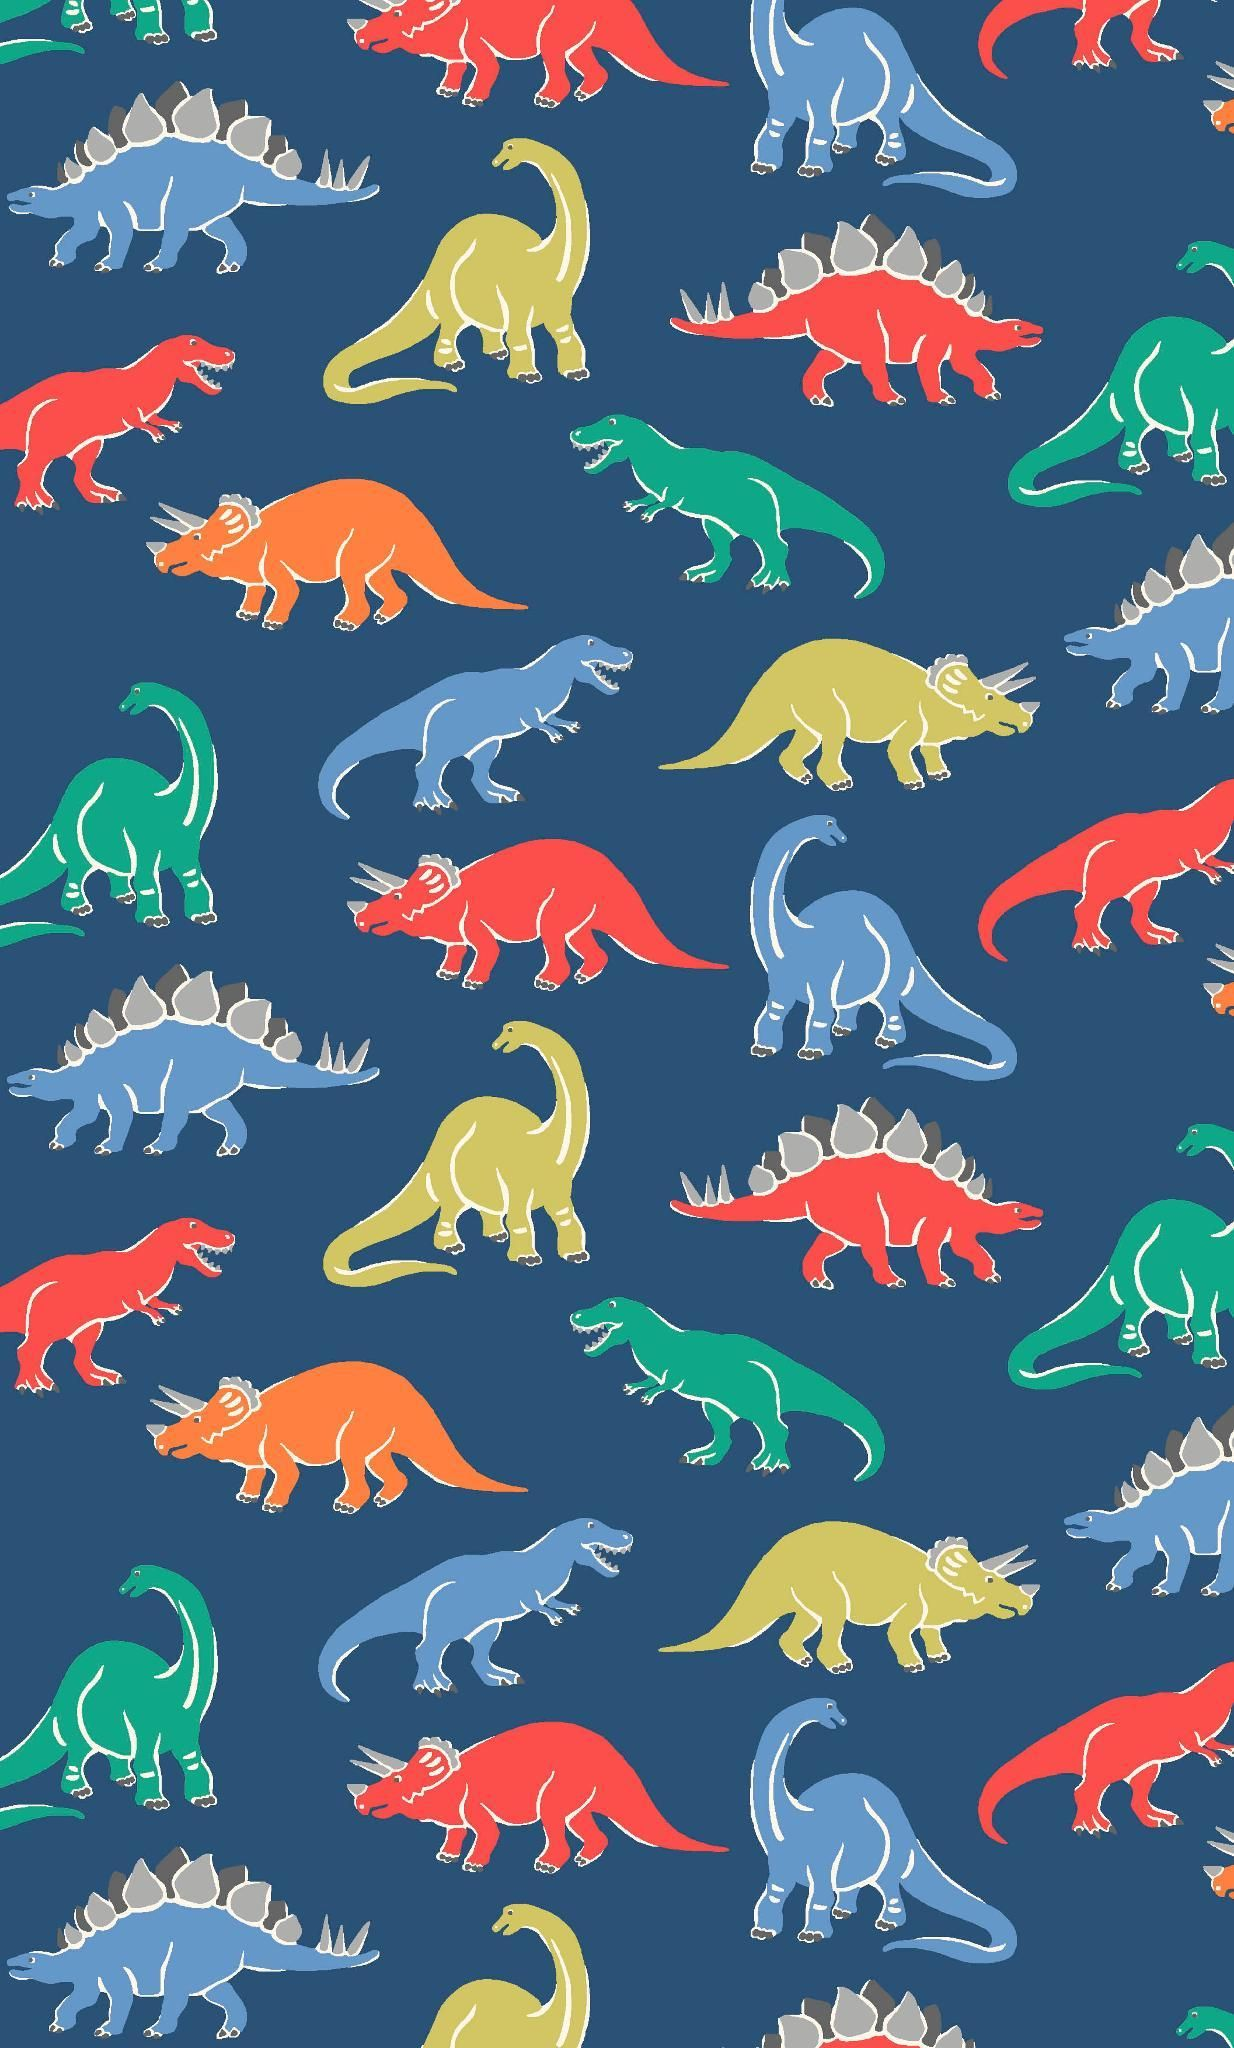 Dino Stamp Little dinosaur fans will love our gang of